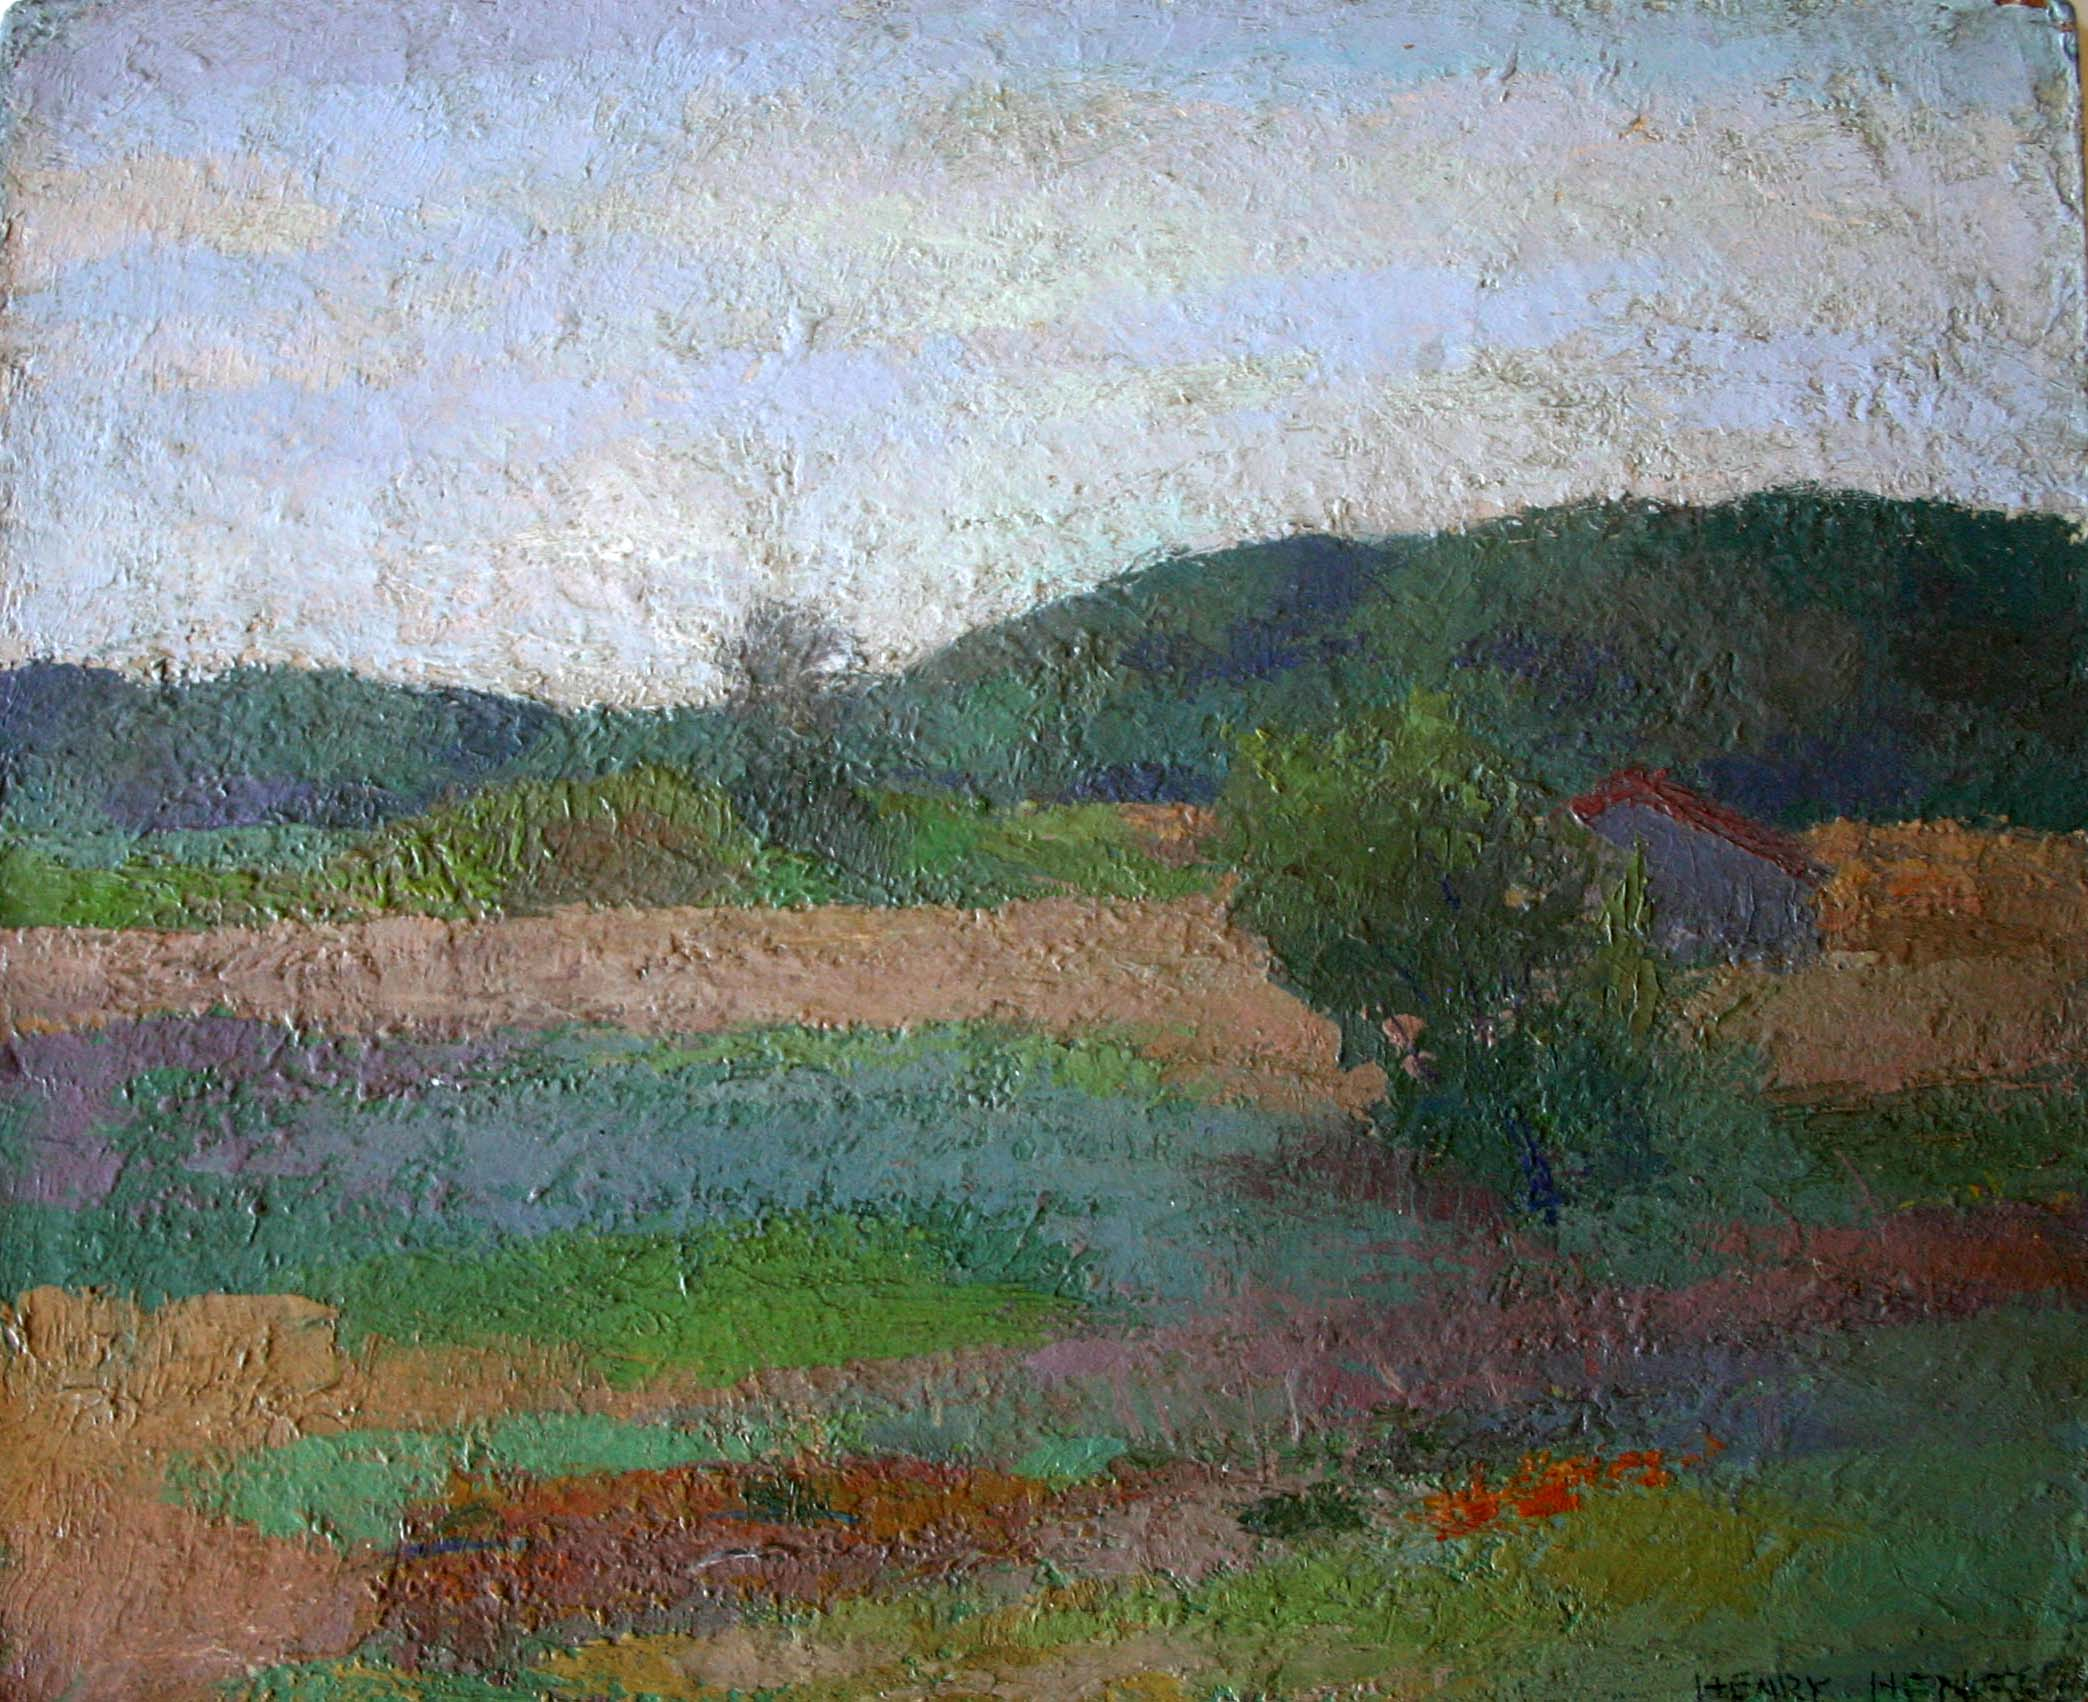 Untitled [Landscape]